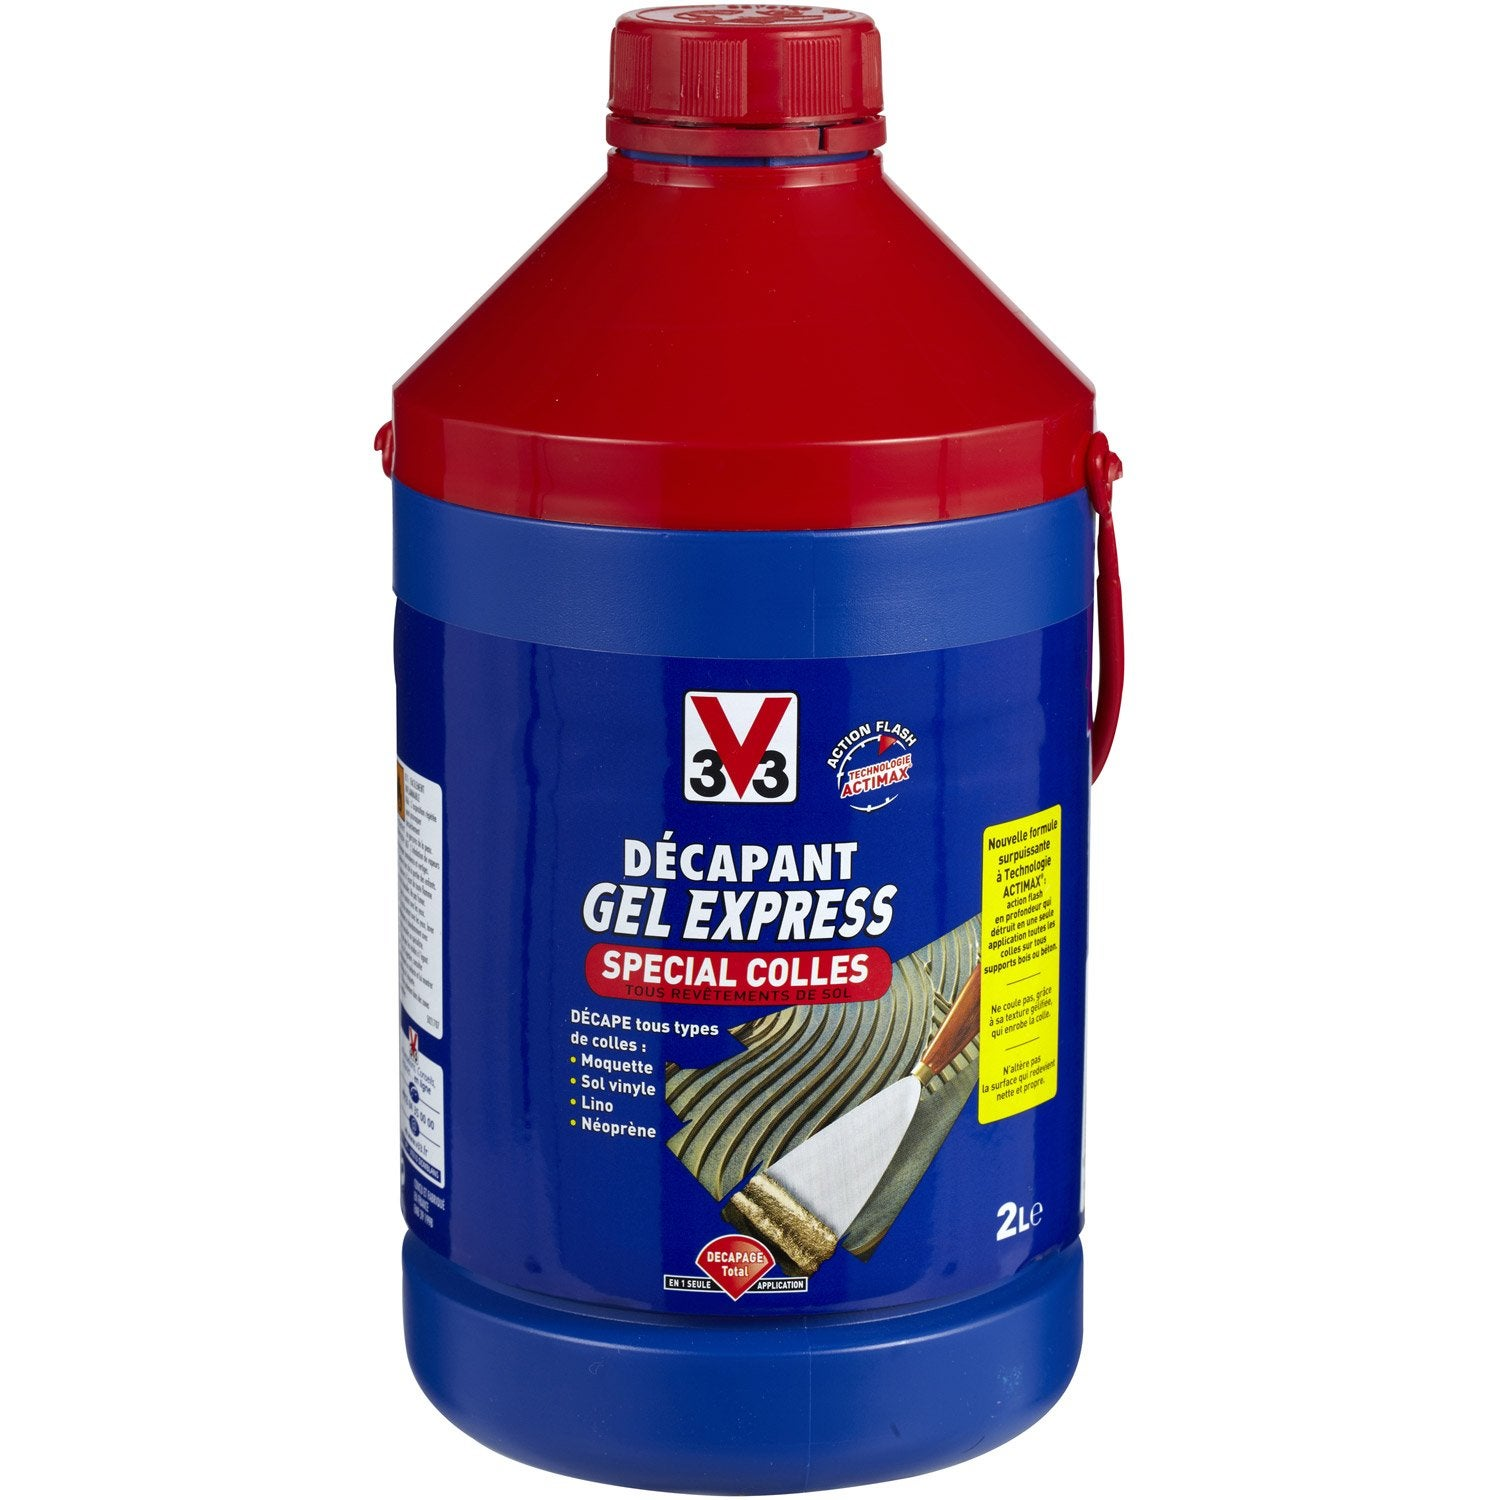 D capant colle v33 gel express 2 l leroy merlin for Peinture marques